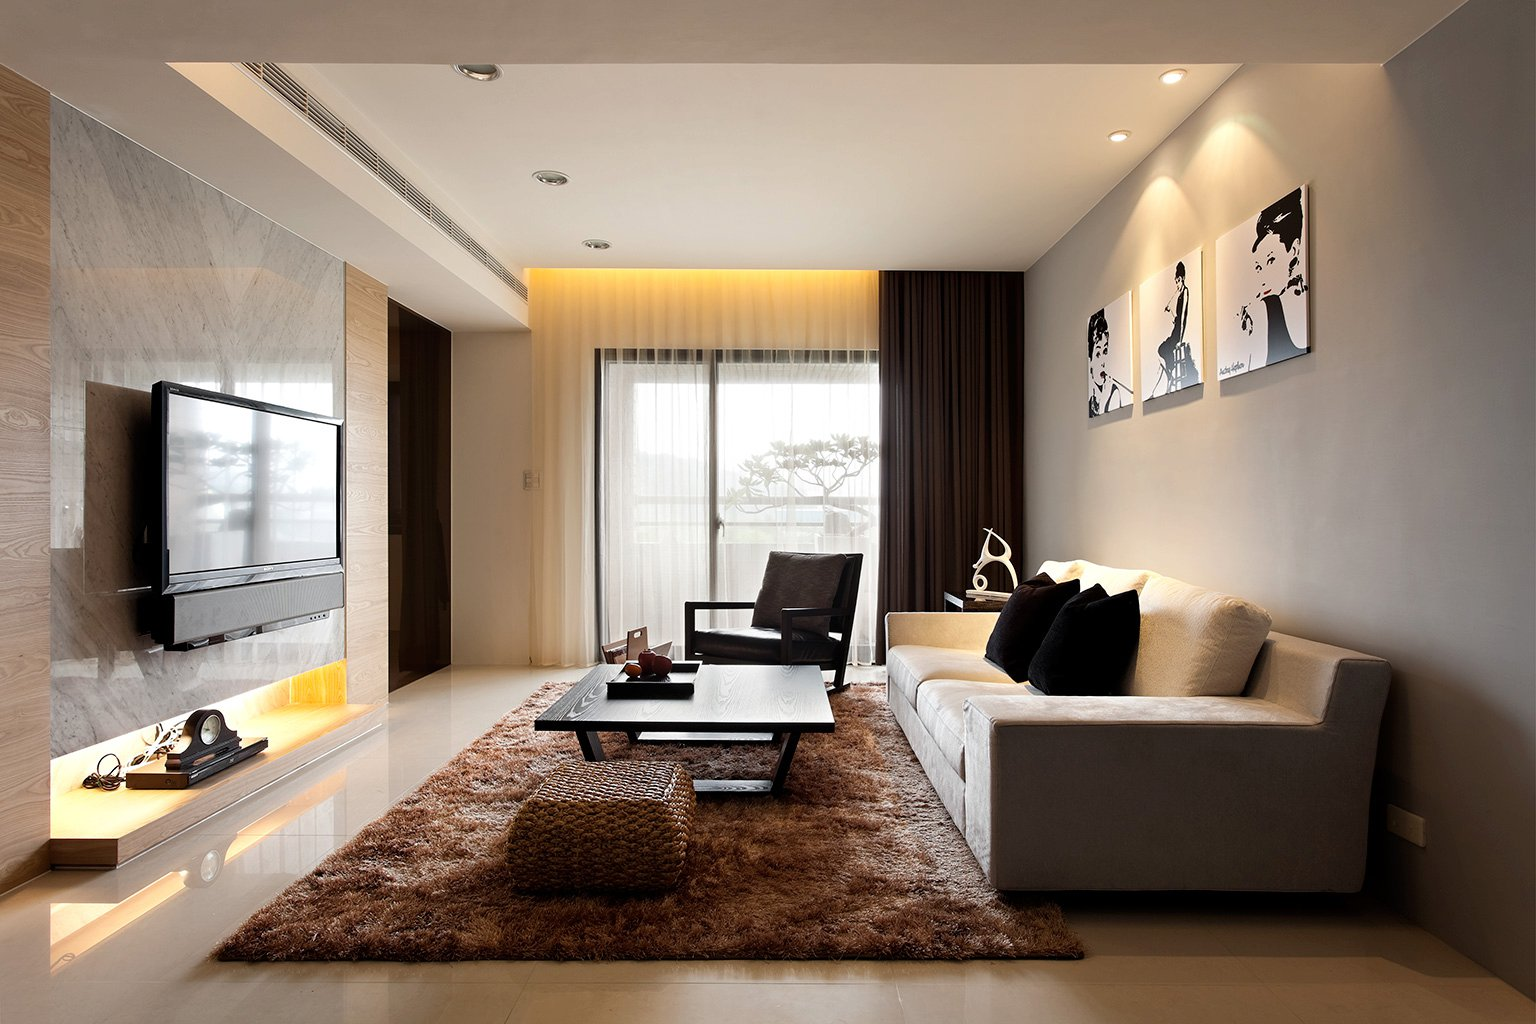 Living Room Decor For Rooms interior decorating 2014 living rooms decoration modern minimalist decor with a homey flow